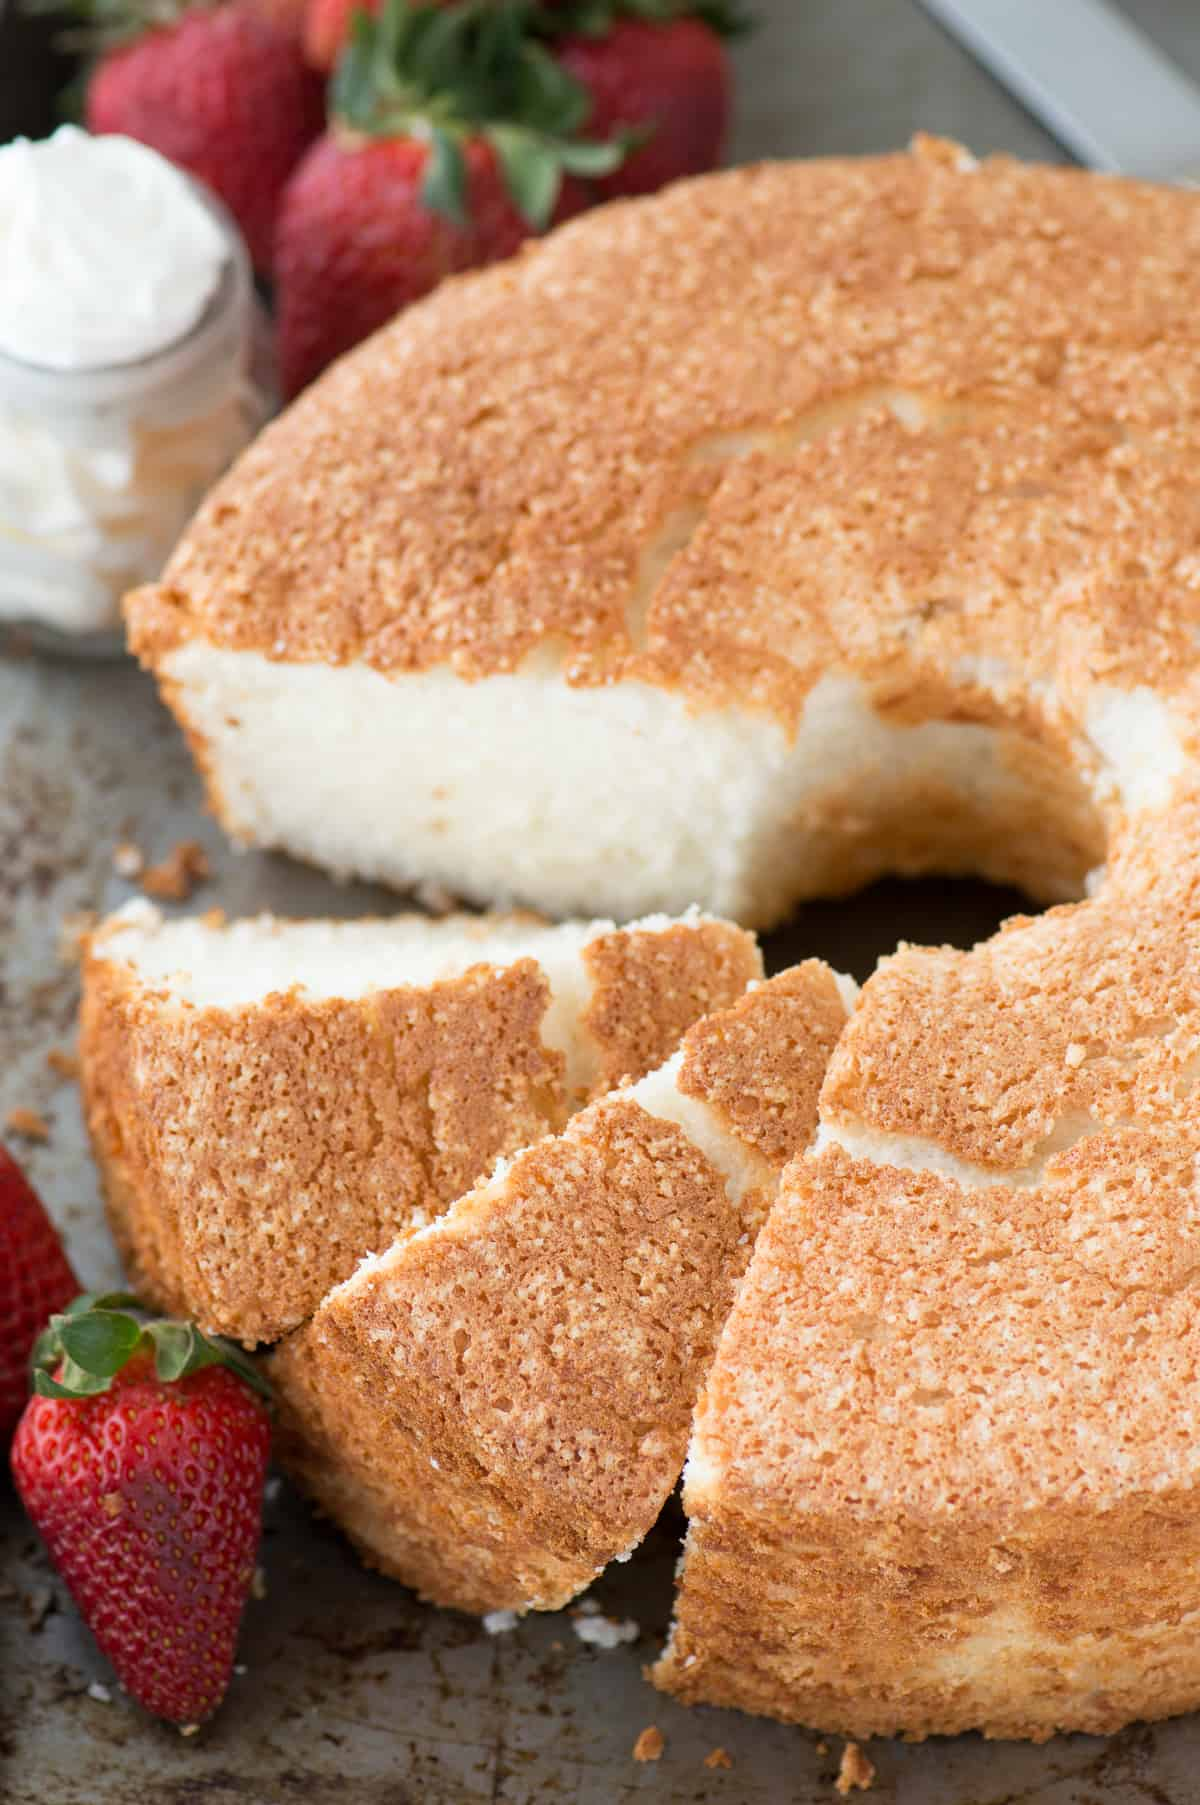 Homemade Gluten Free Angel Food Cake Recipe